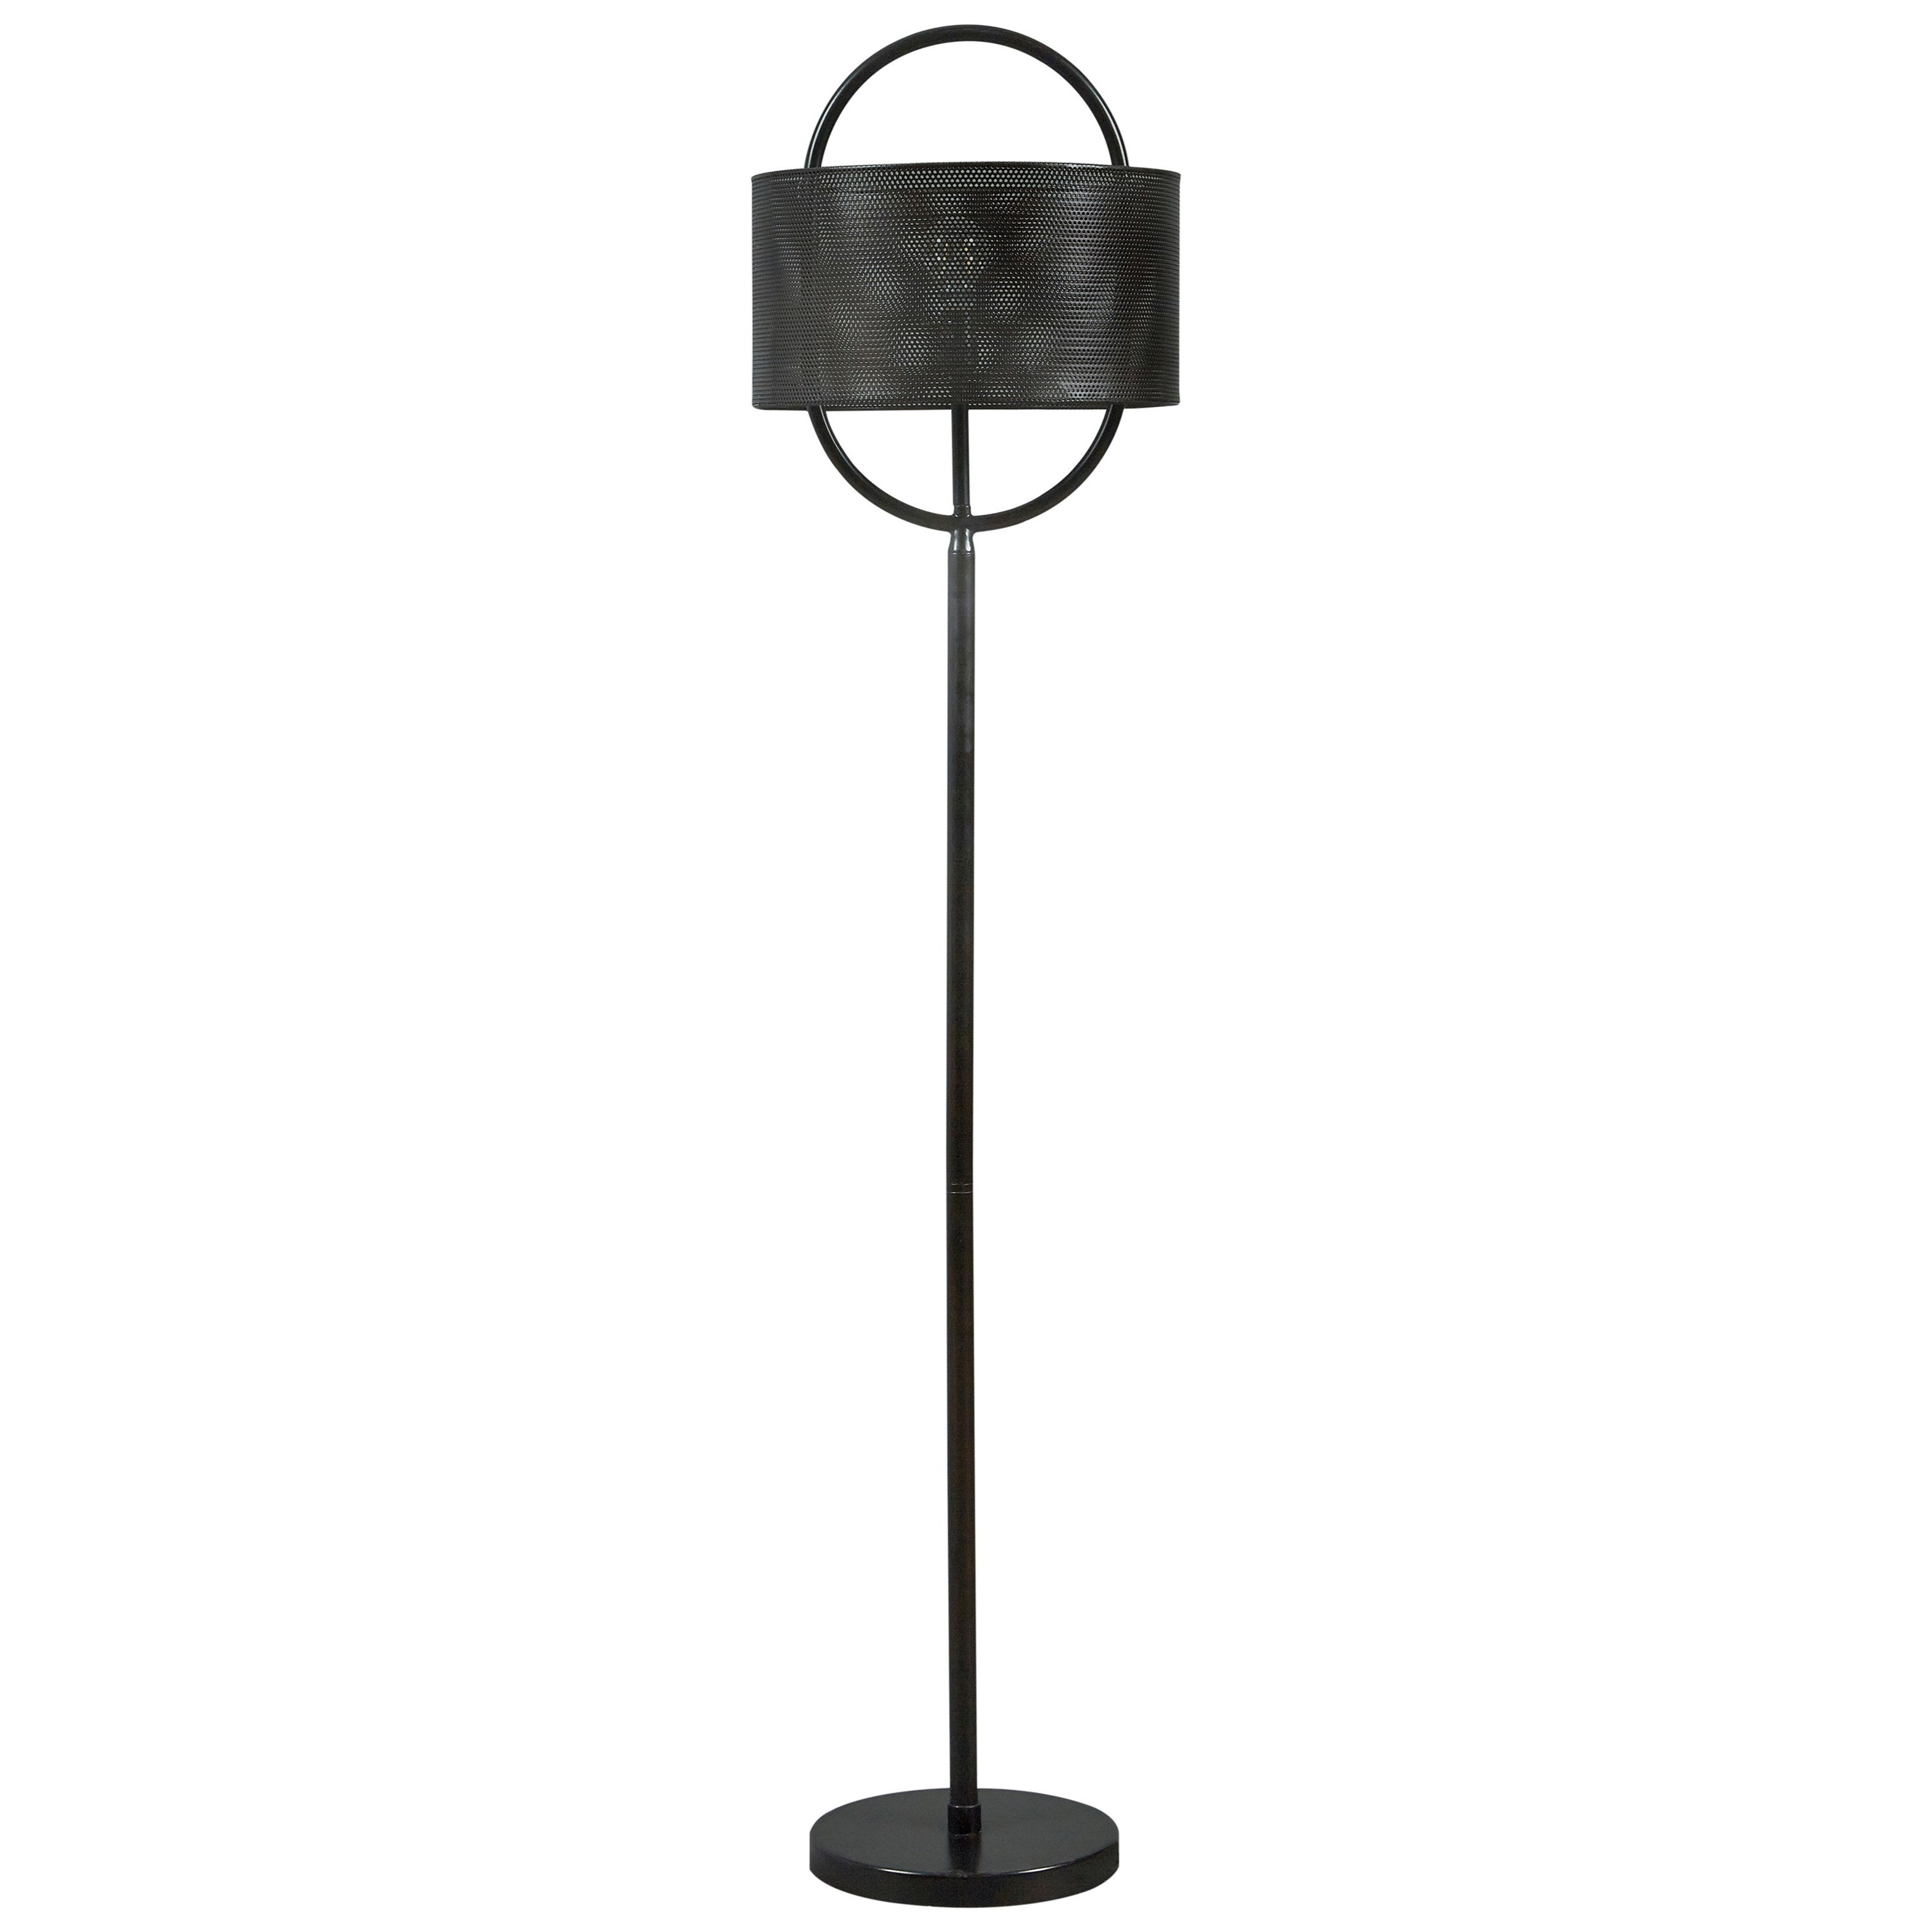 Lamps - Contemporary Floor Lamp by Signature Design by Ashley at HomeWorld Furniture